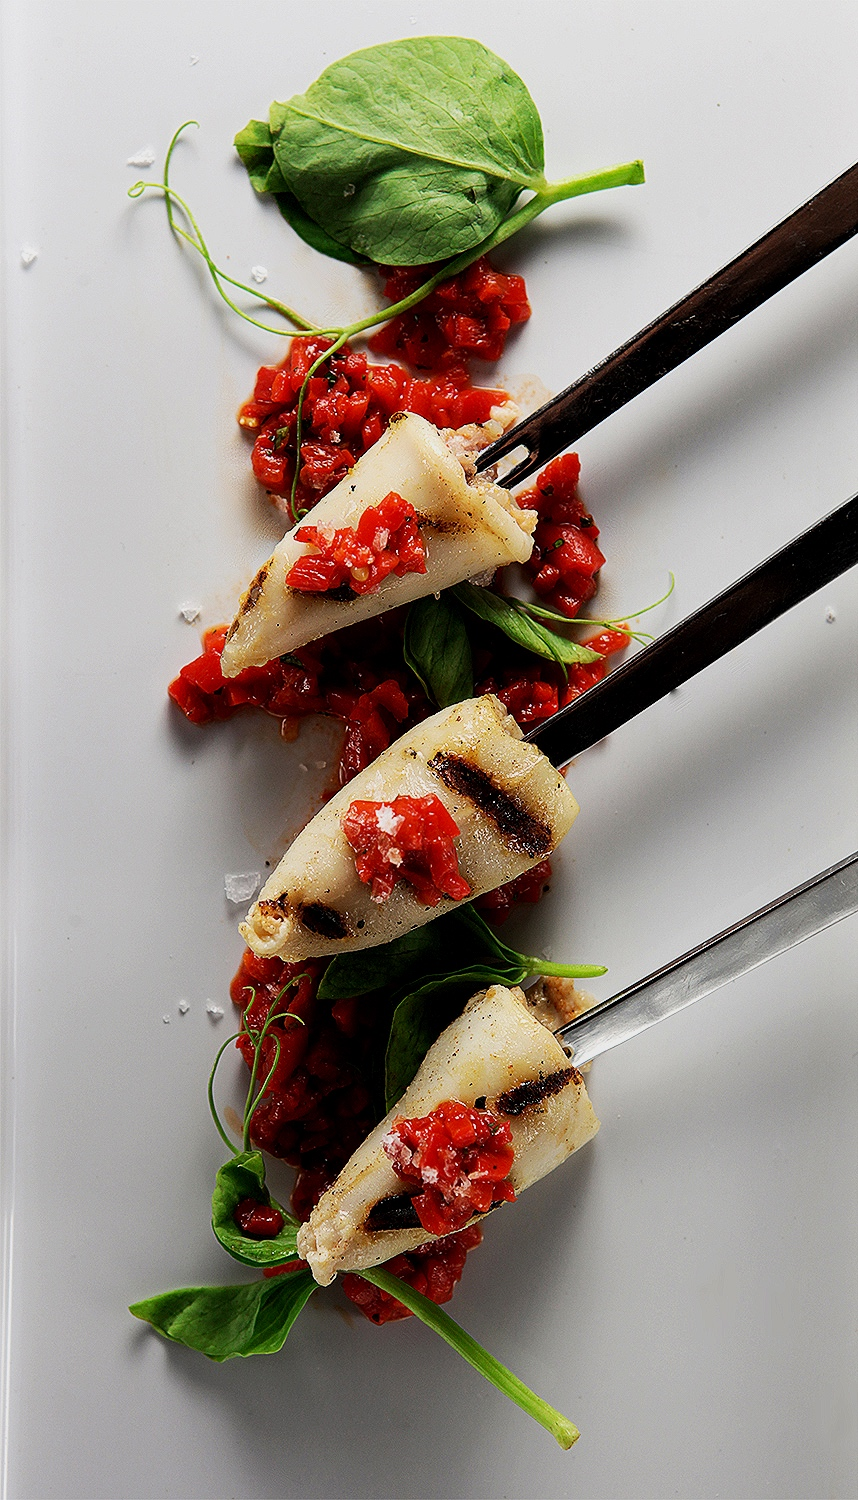 Stuffed squid with red pepper salsa